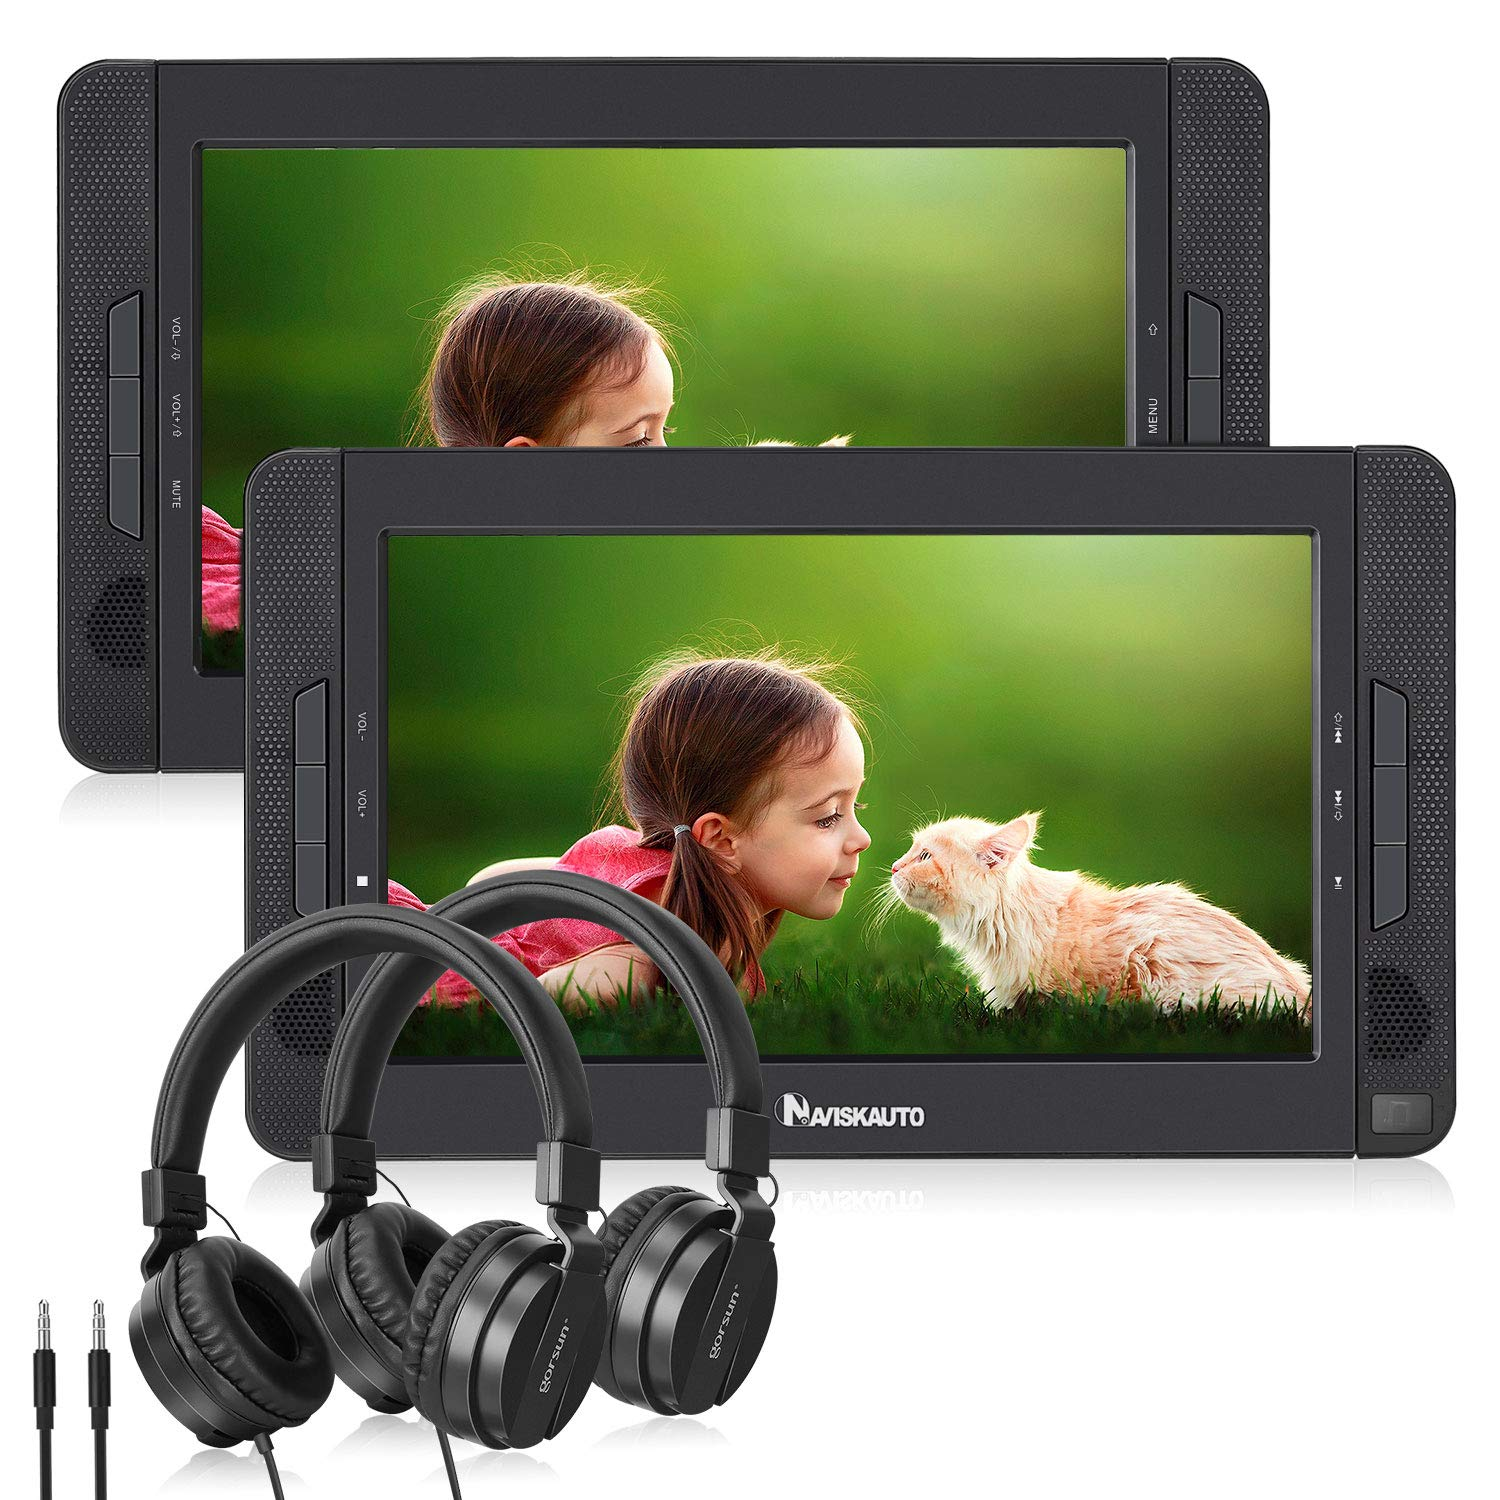 NAVISKAUTO 10.1'' Dual Screen Portable DVD Player for Car, Headrest Video Player with 5-Hour Rechargeable Battery, Last Memory Function and Two Headphones